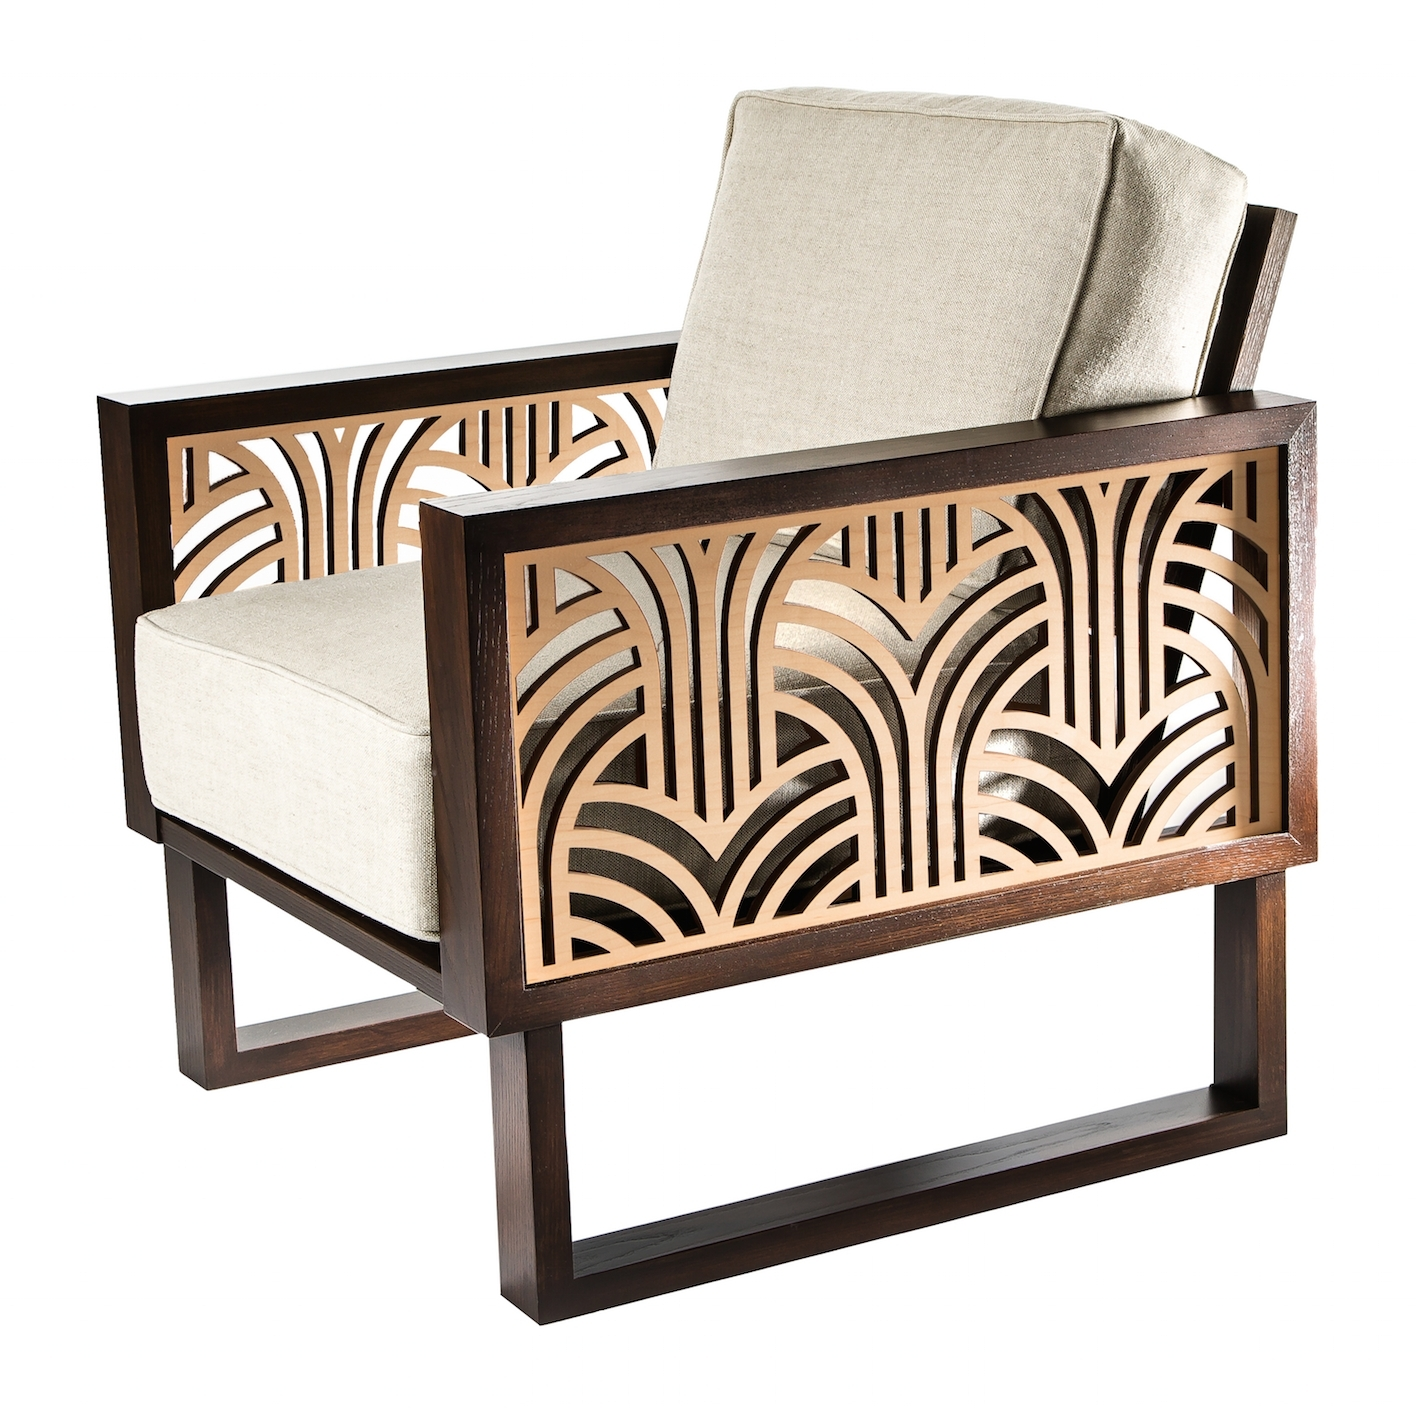 13 Art Deco Chairs – Art Deco Furniture In Most Up To Date Art Deco Sofas (View 1 of 20)